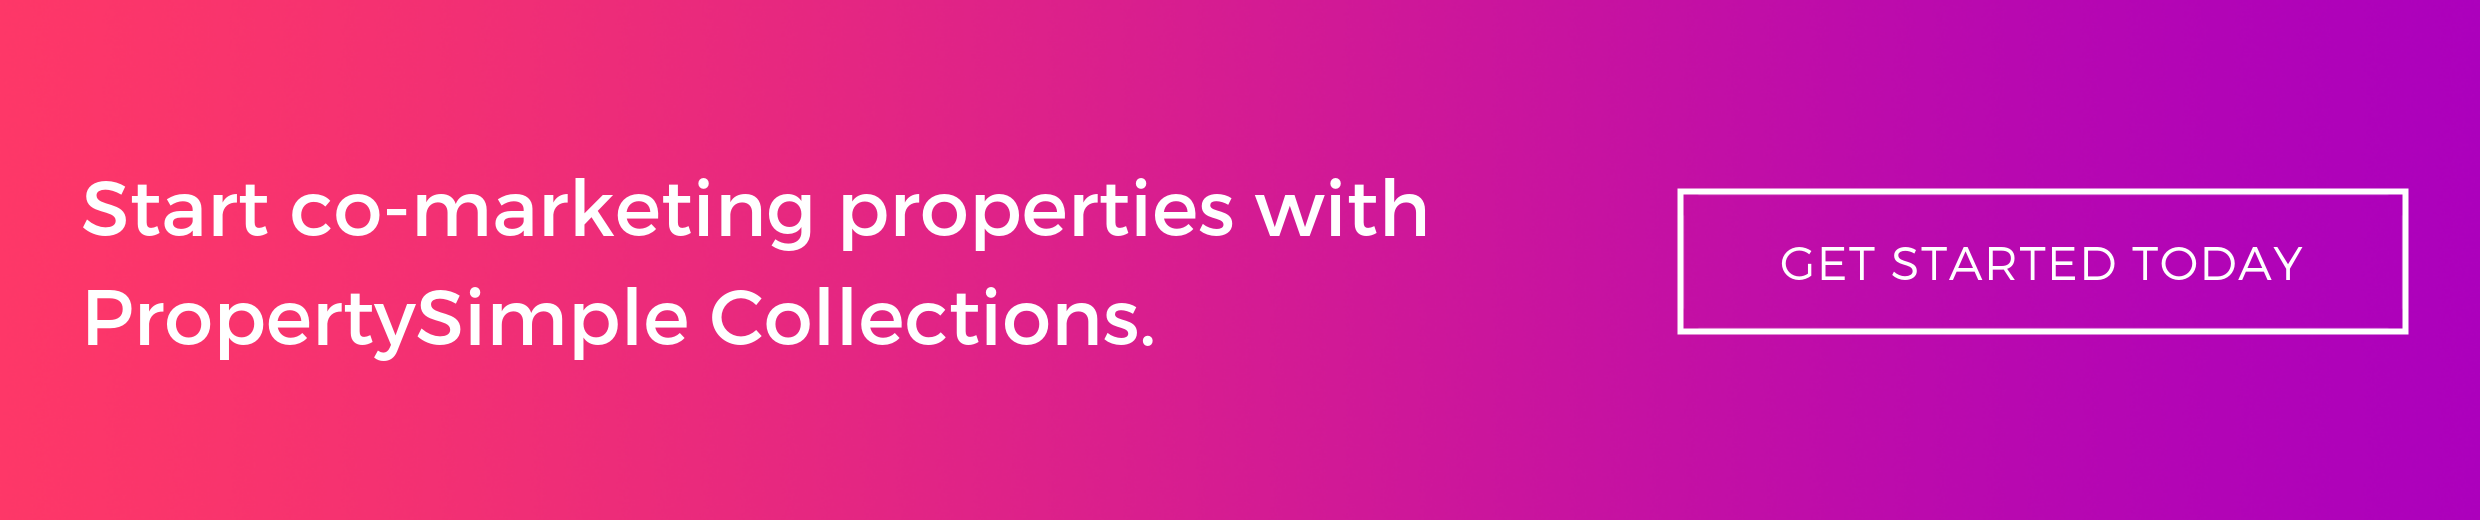 Market any listing in the country with PropertySimple collections